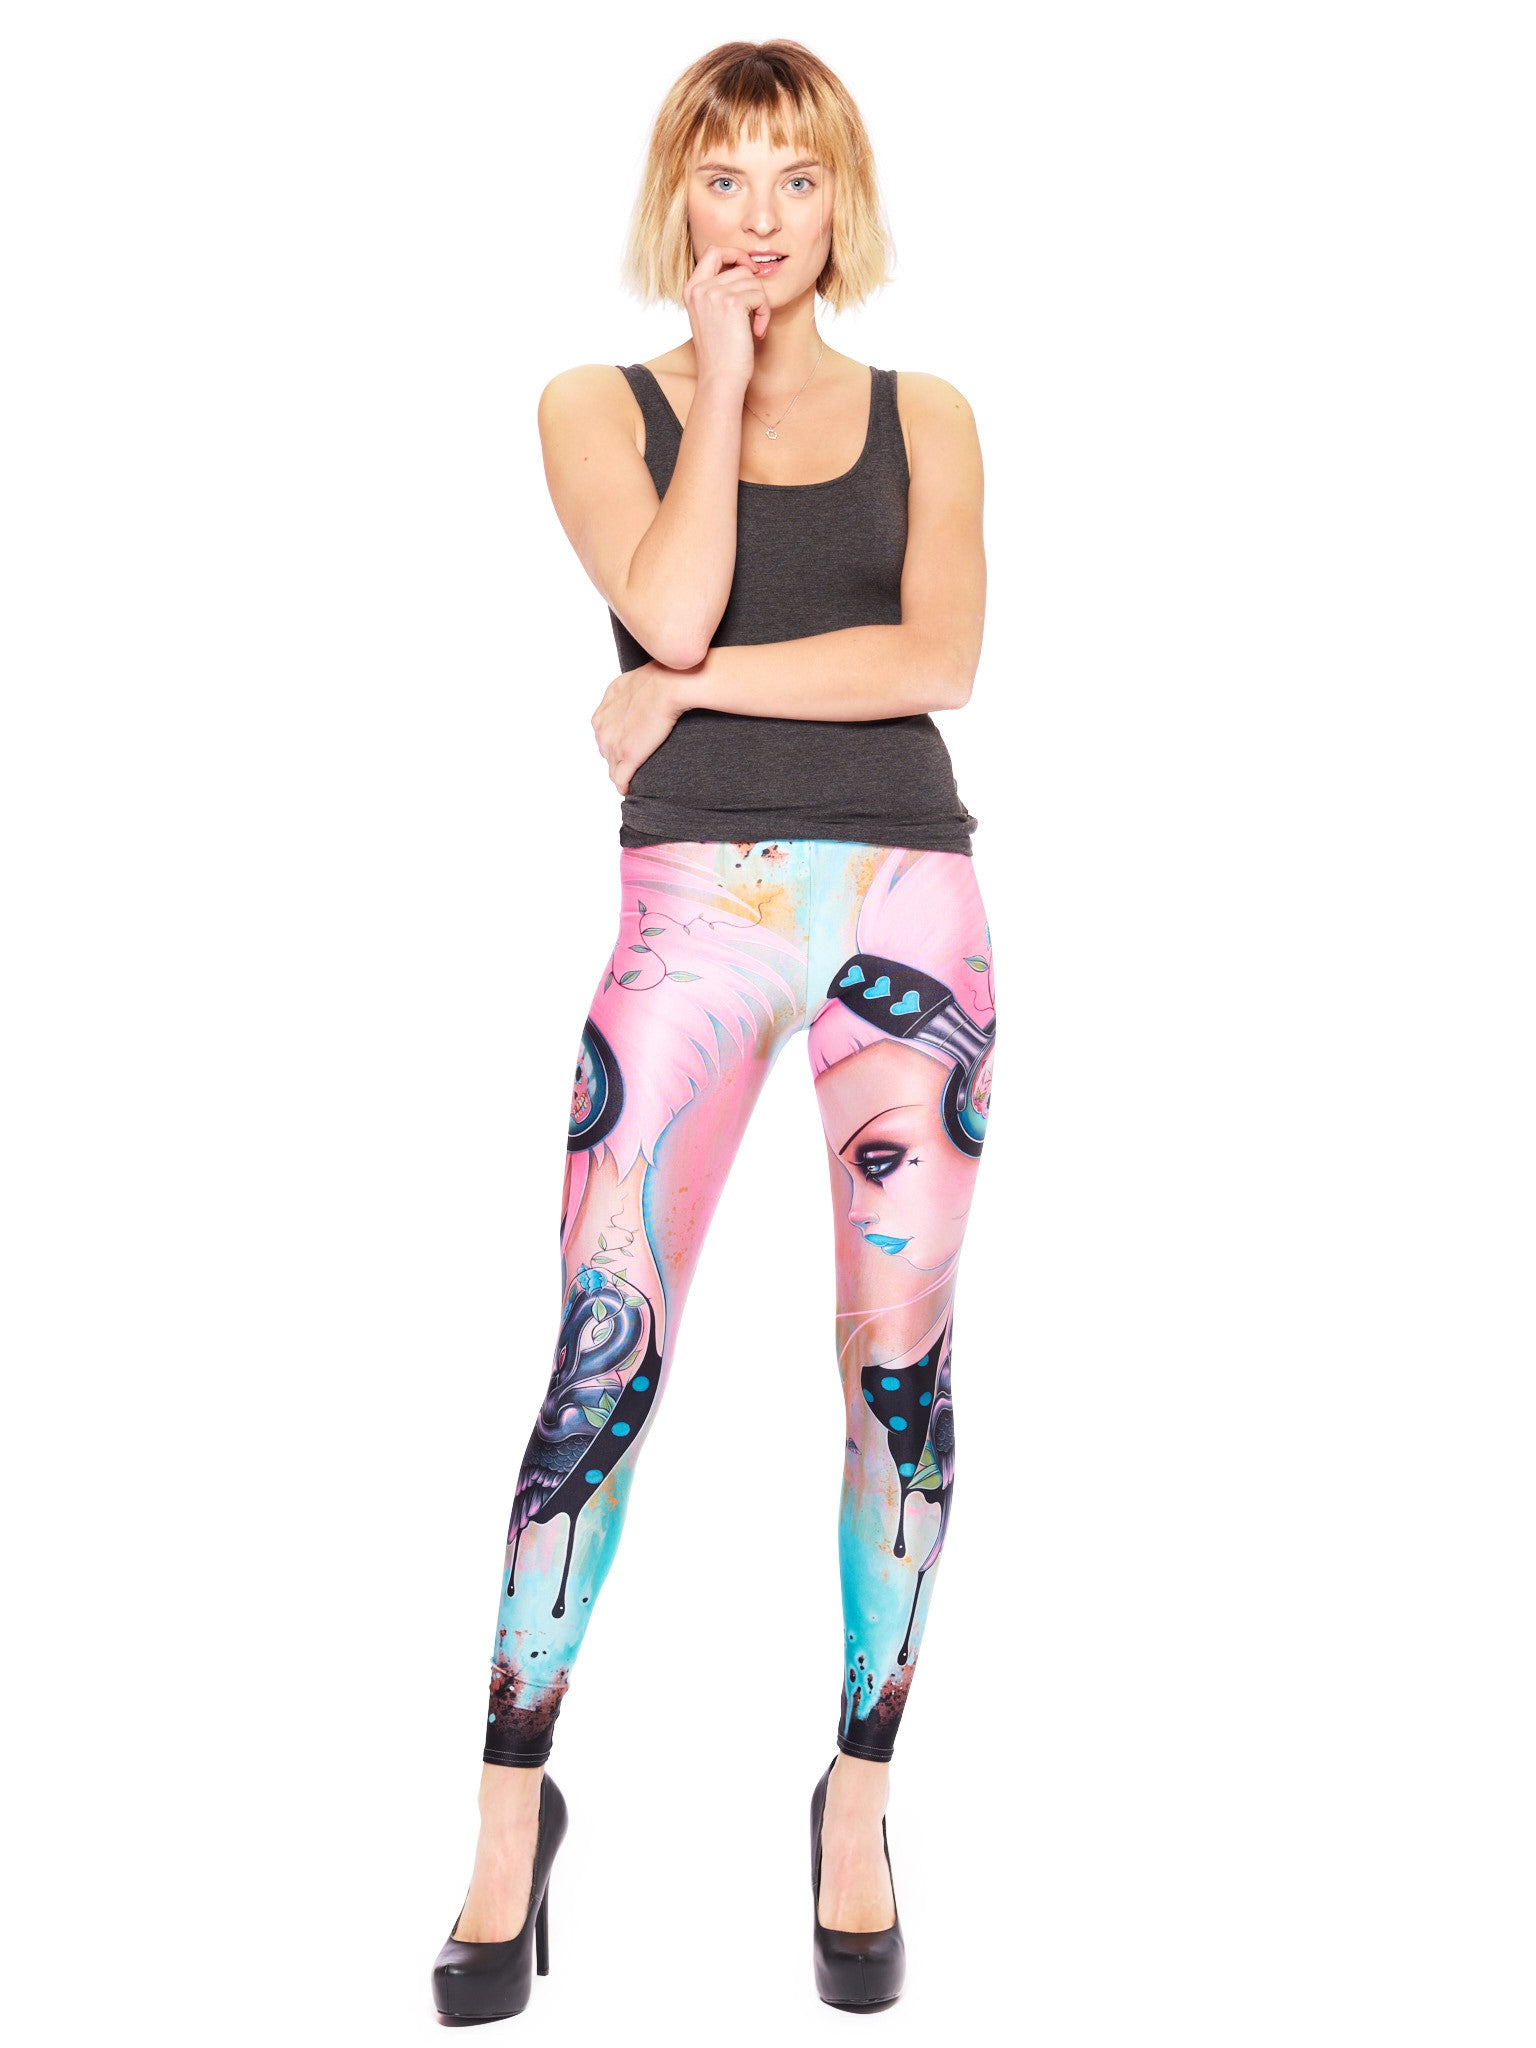 Perennial Beats Queen West Leggings - Nuvango  - 1